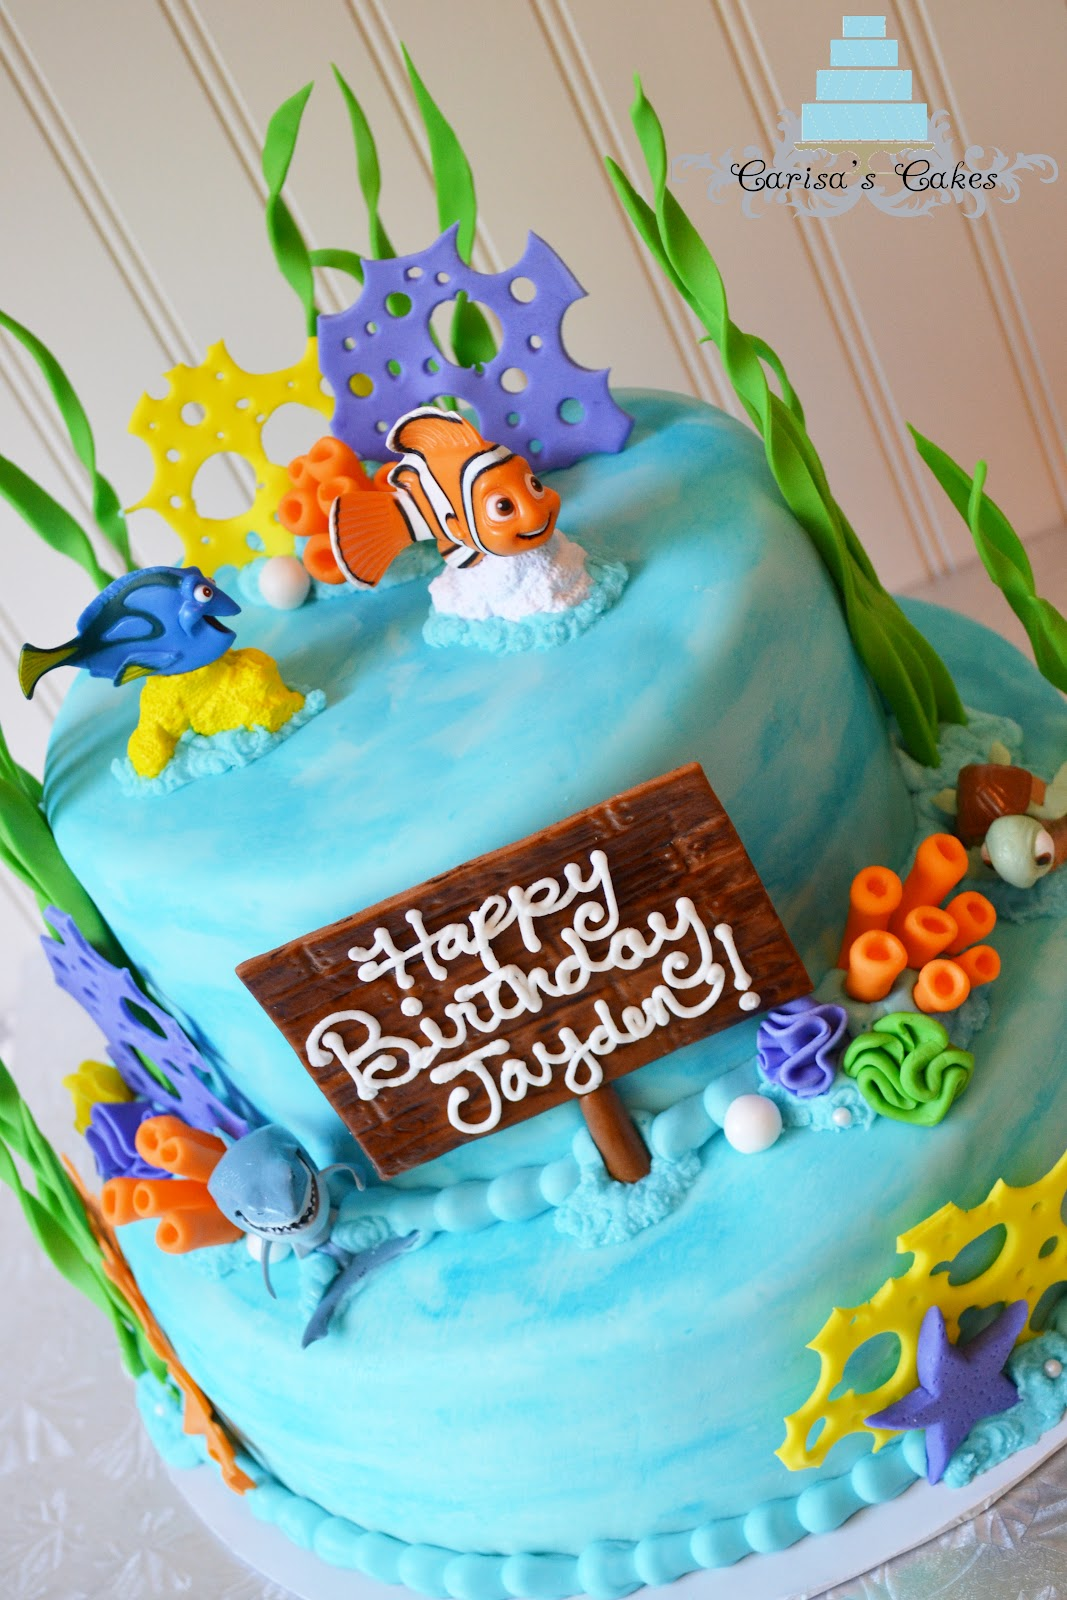 Carisas Cakes Two Tier Finding Nemo Cake